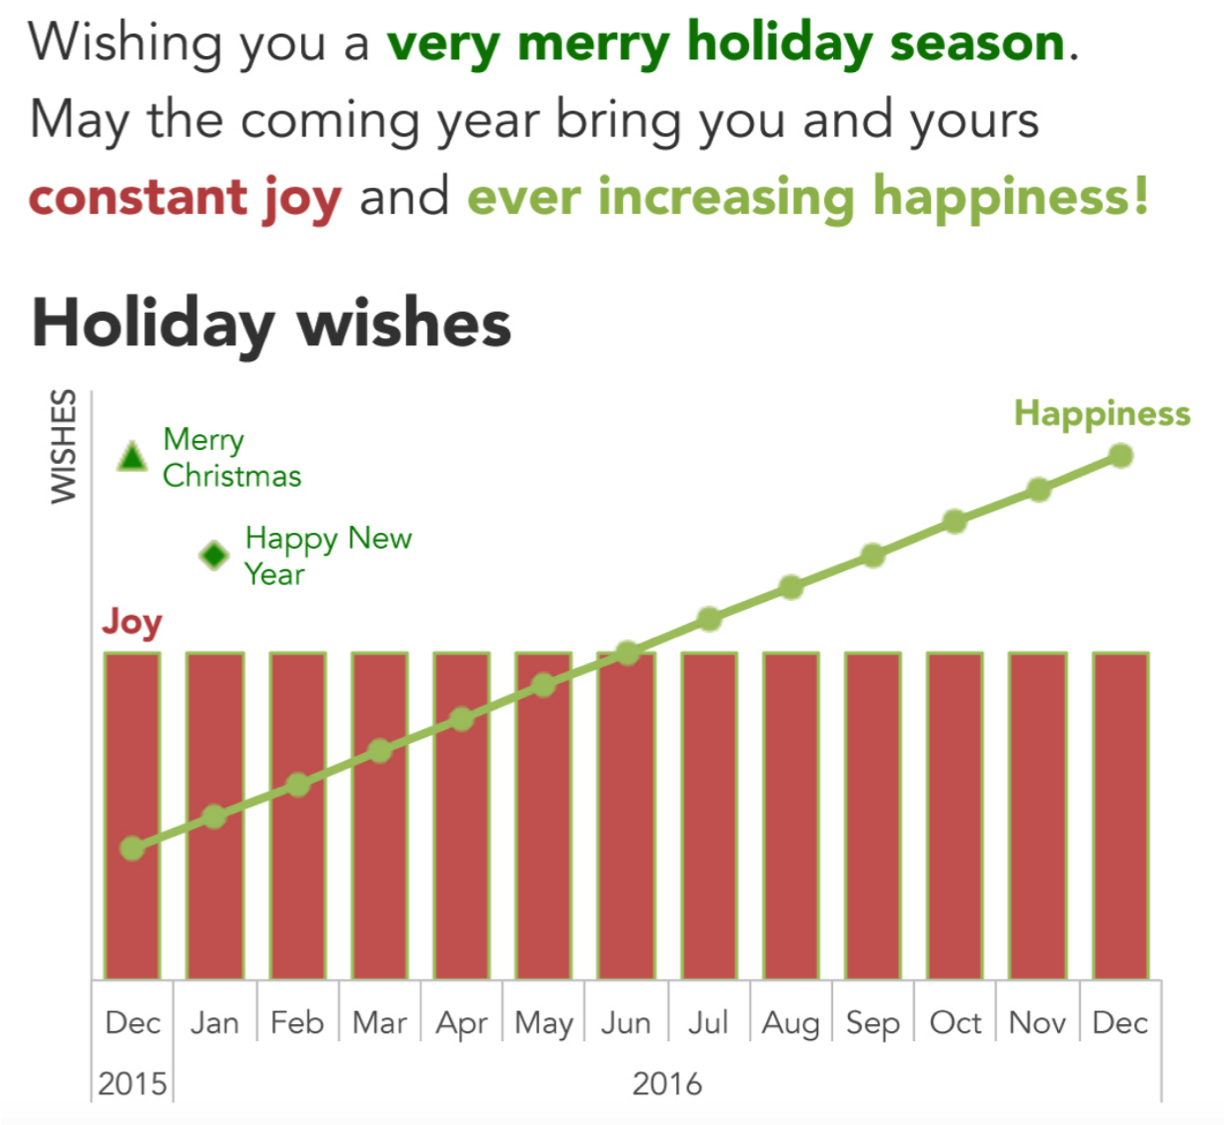 Graphing holiday wishes